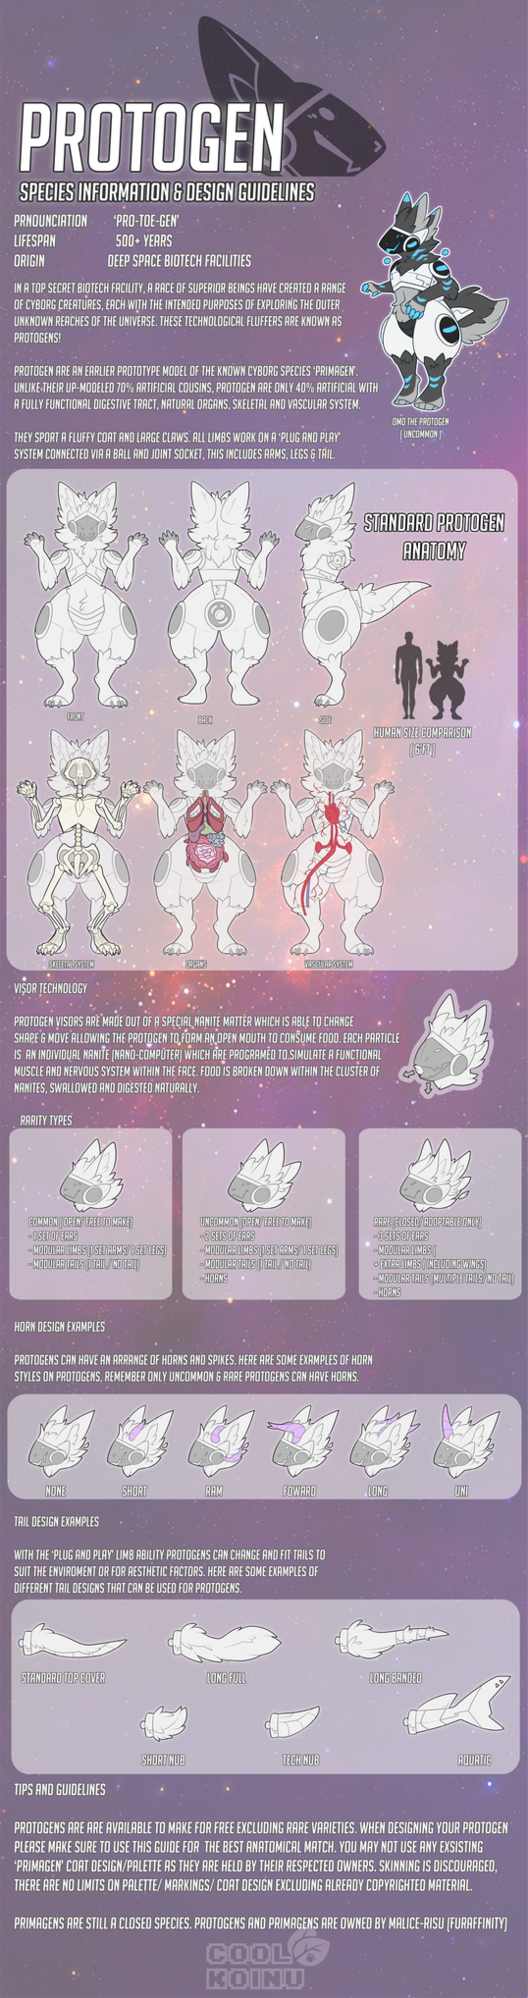 Protogen species anatomy4k.png